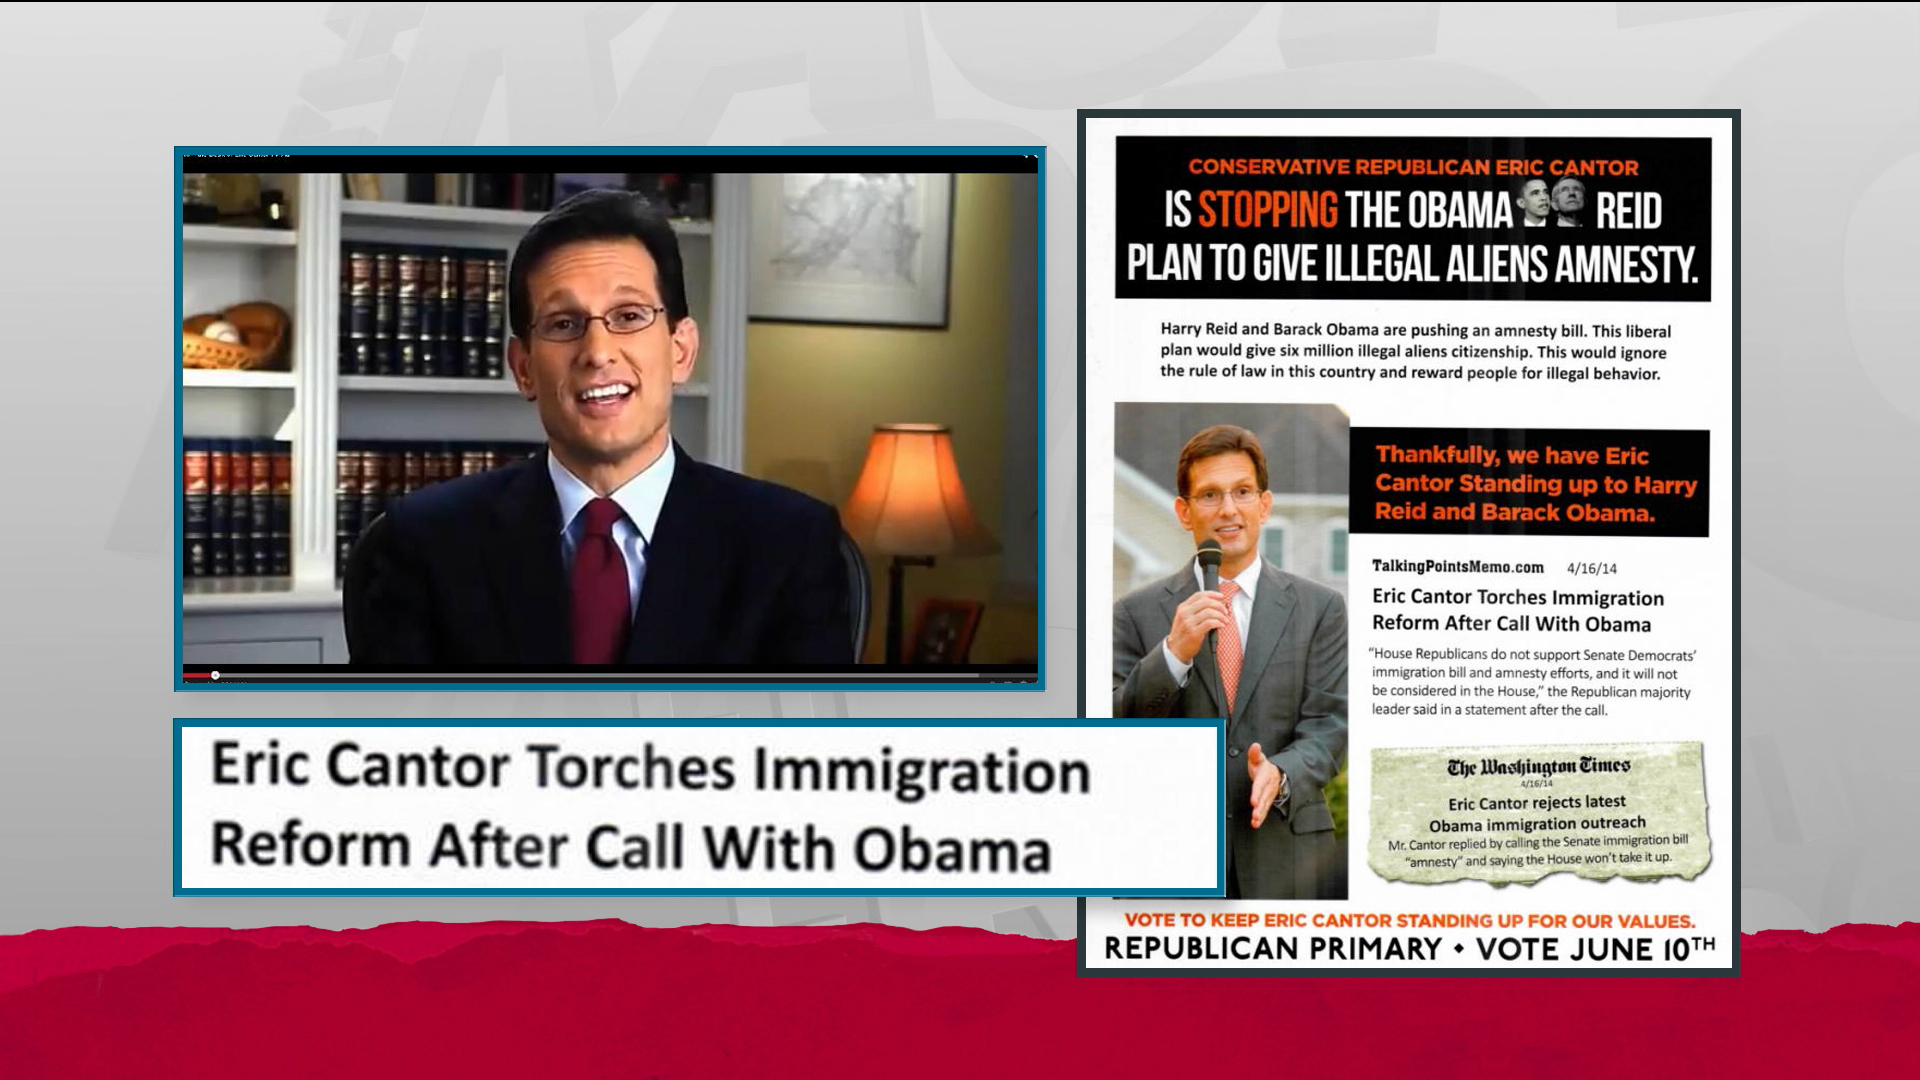 Local organizing key to Brat defeat of Cantor